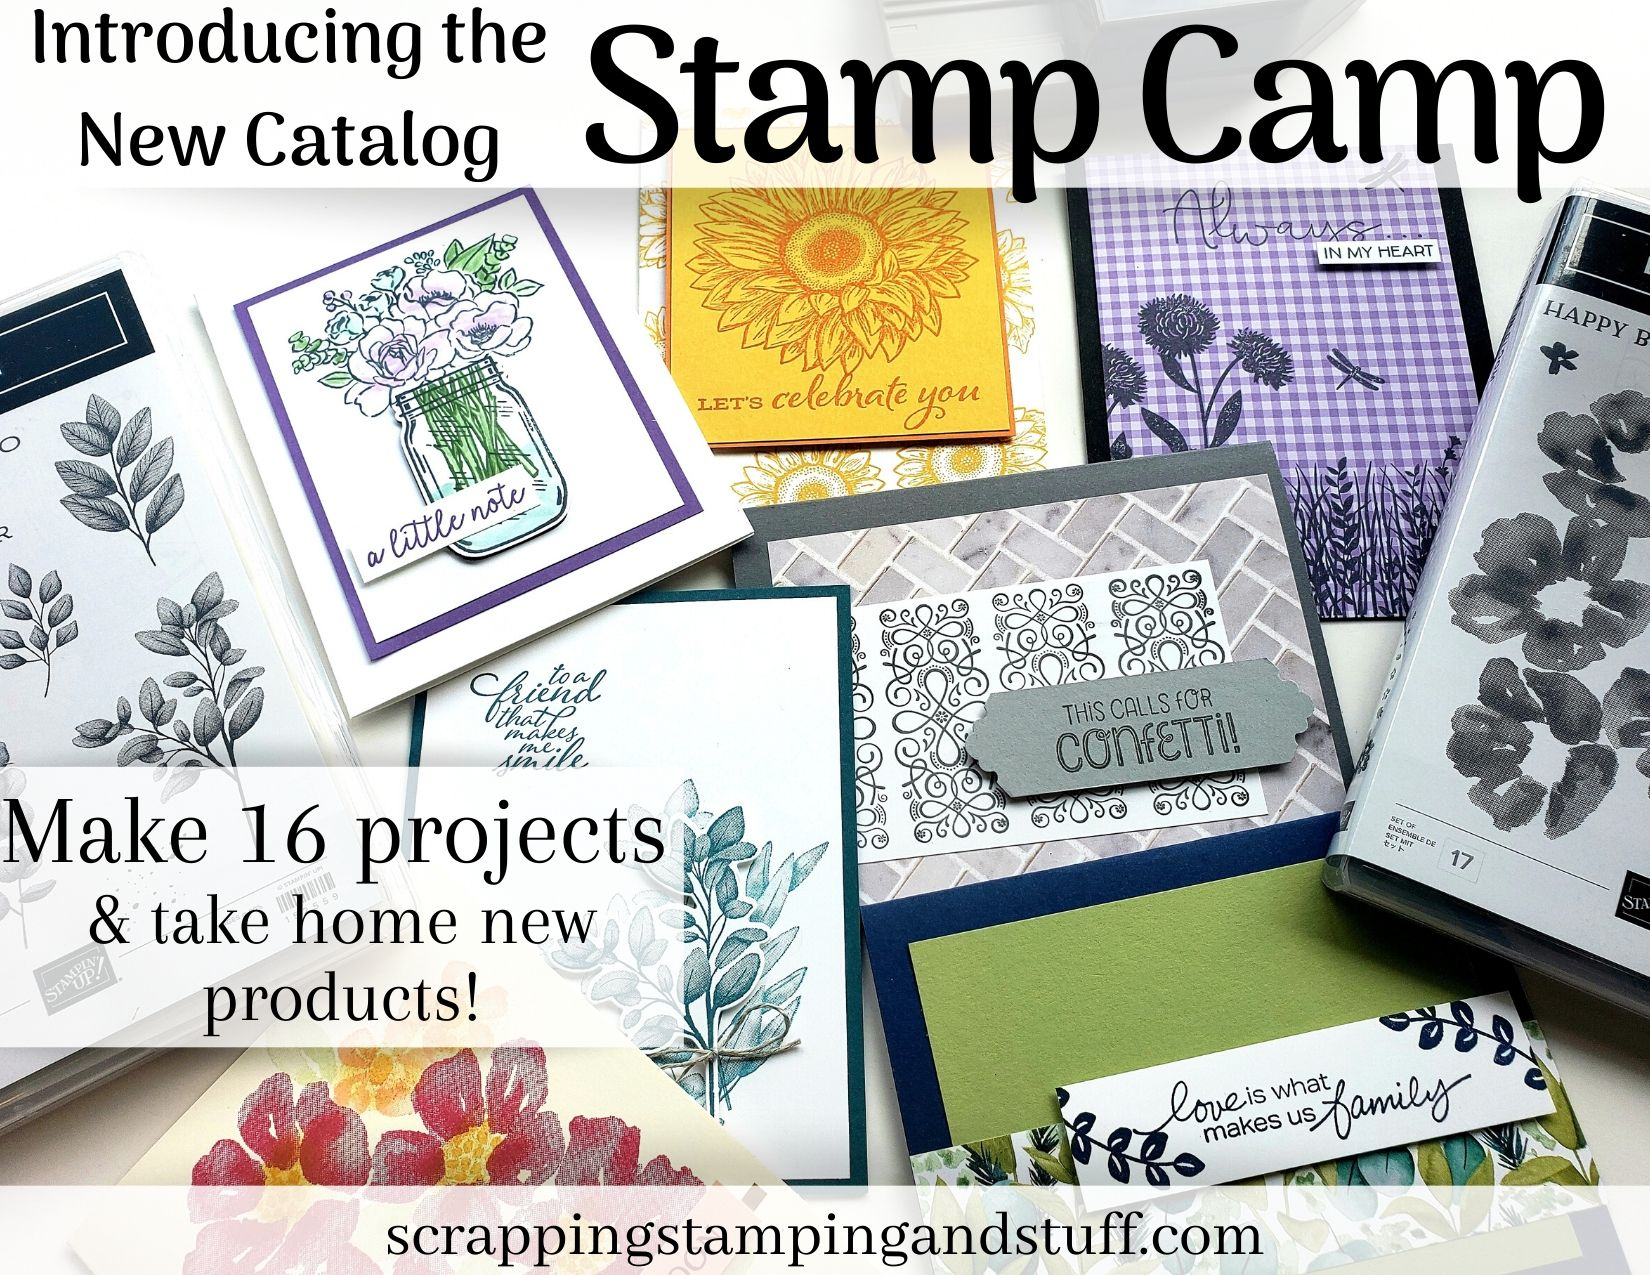 Register Now For Stamp Camp!